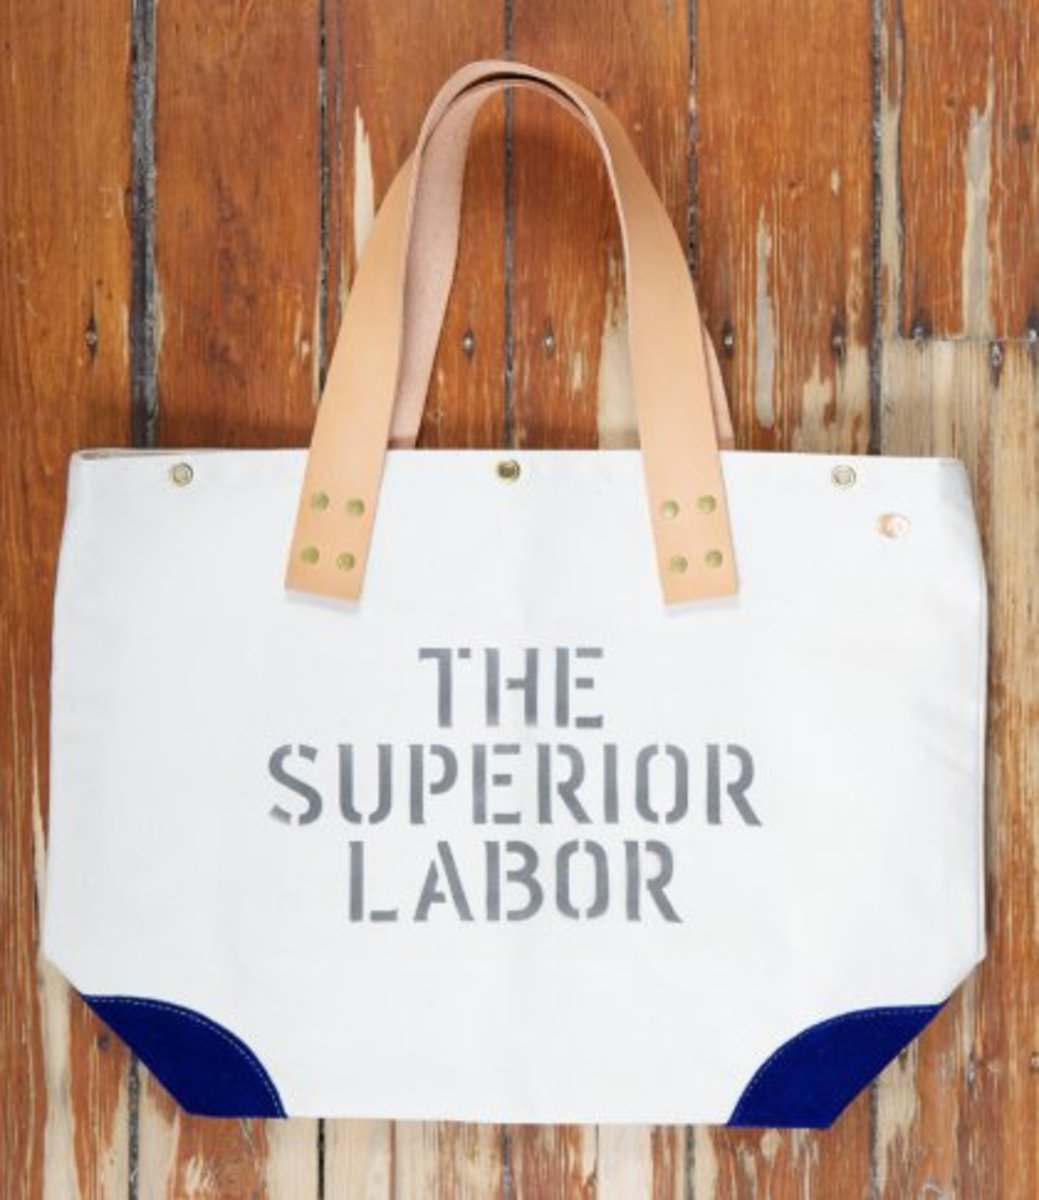 super-labor-market-bag-11